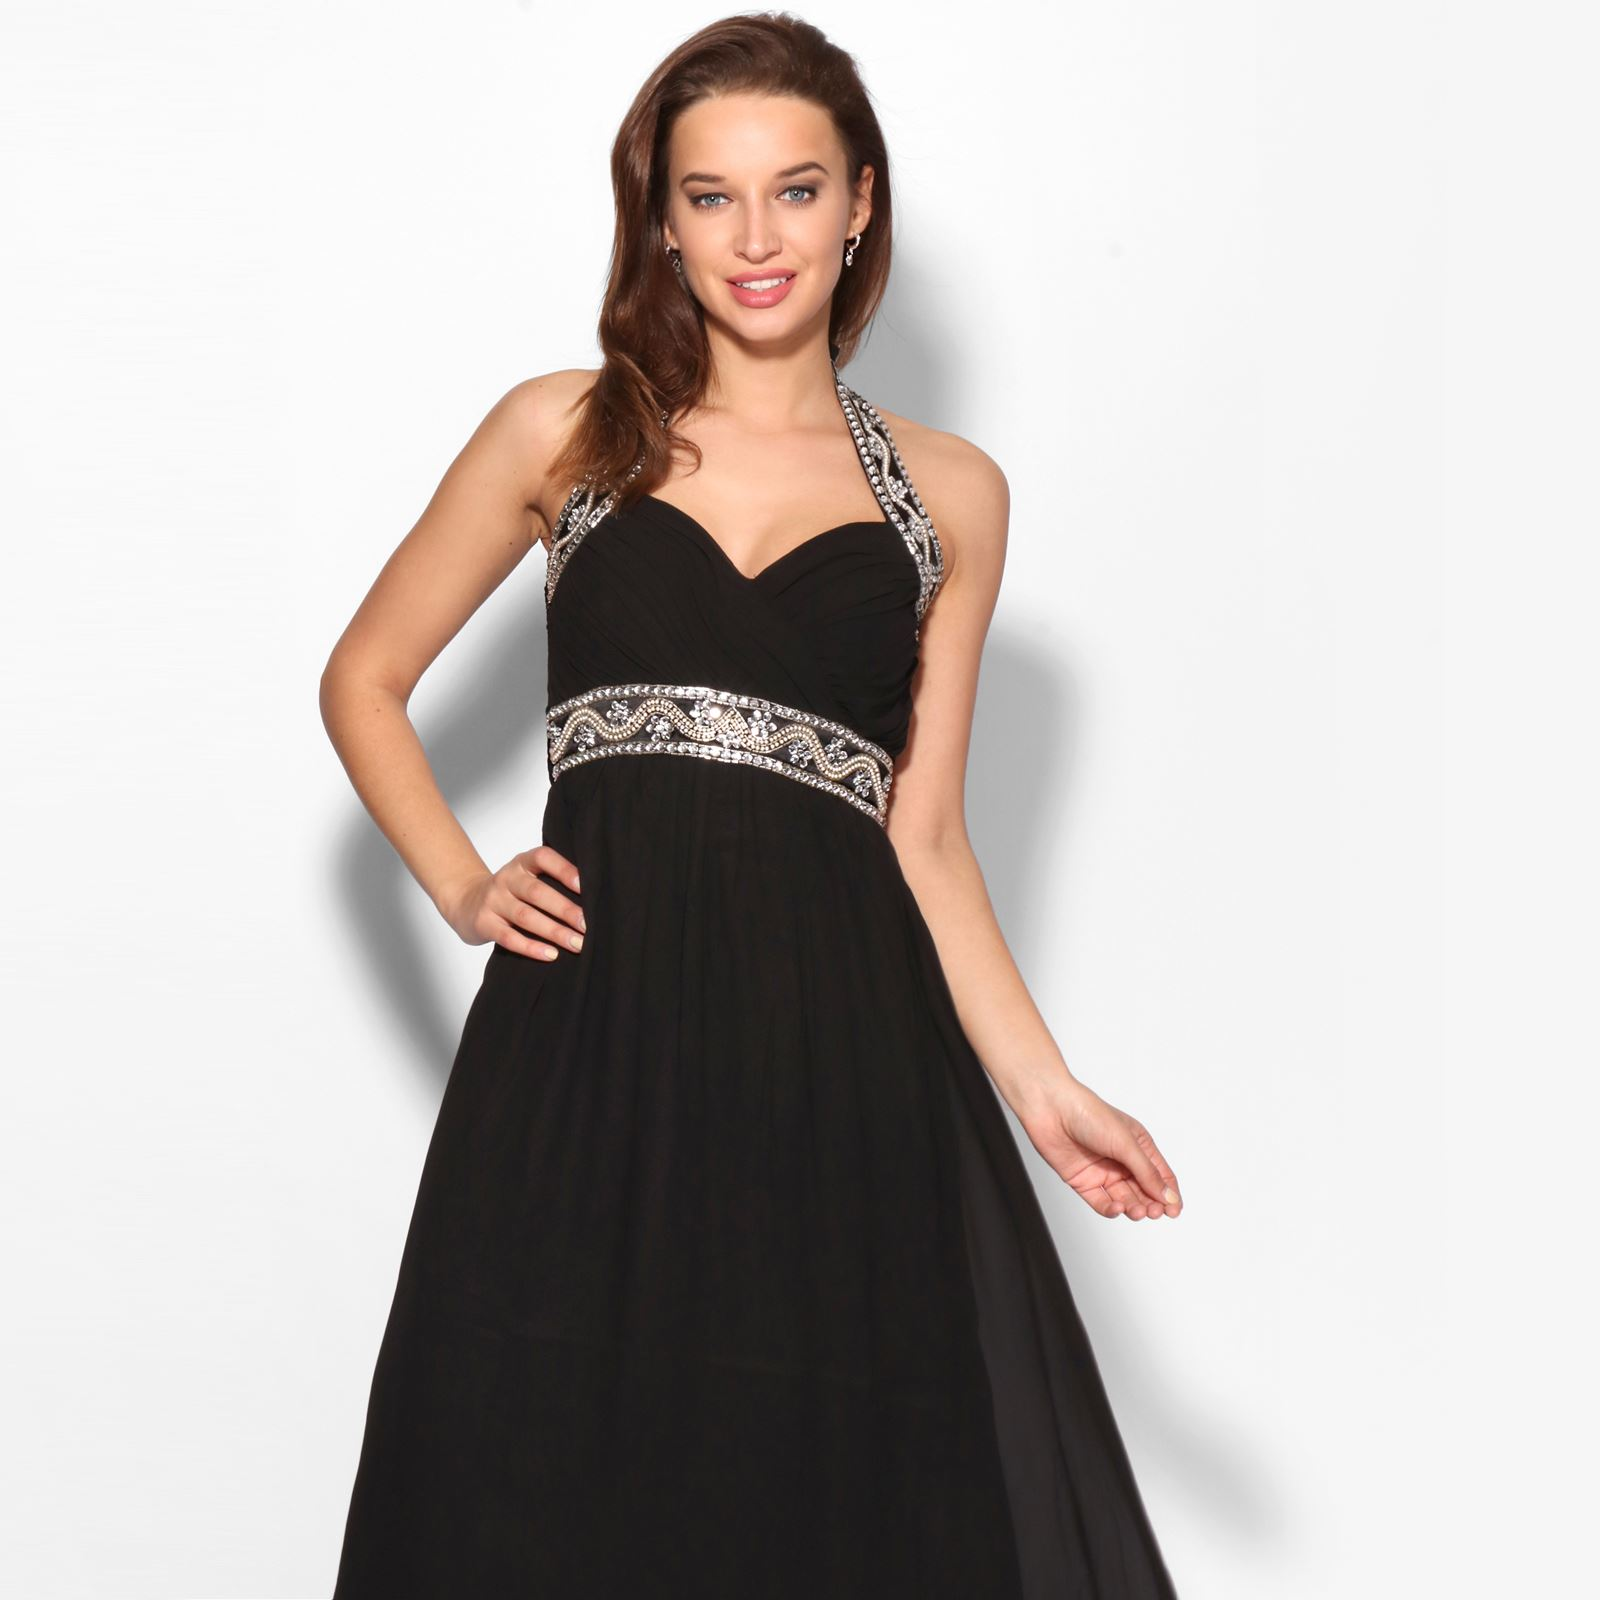 Women-Formal-Diamante-Wedding-Cocktail-Dress-Long-Ball-Gown-Prom-Maxi-Party-8-18 thumbnail 4